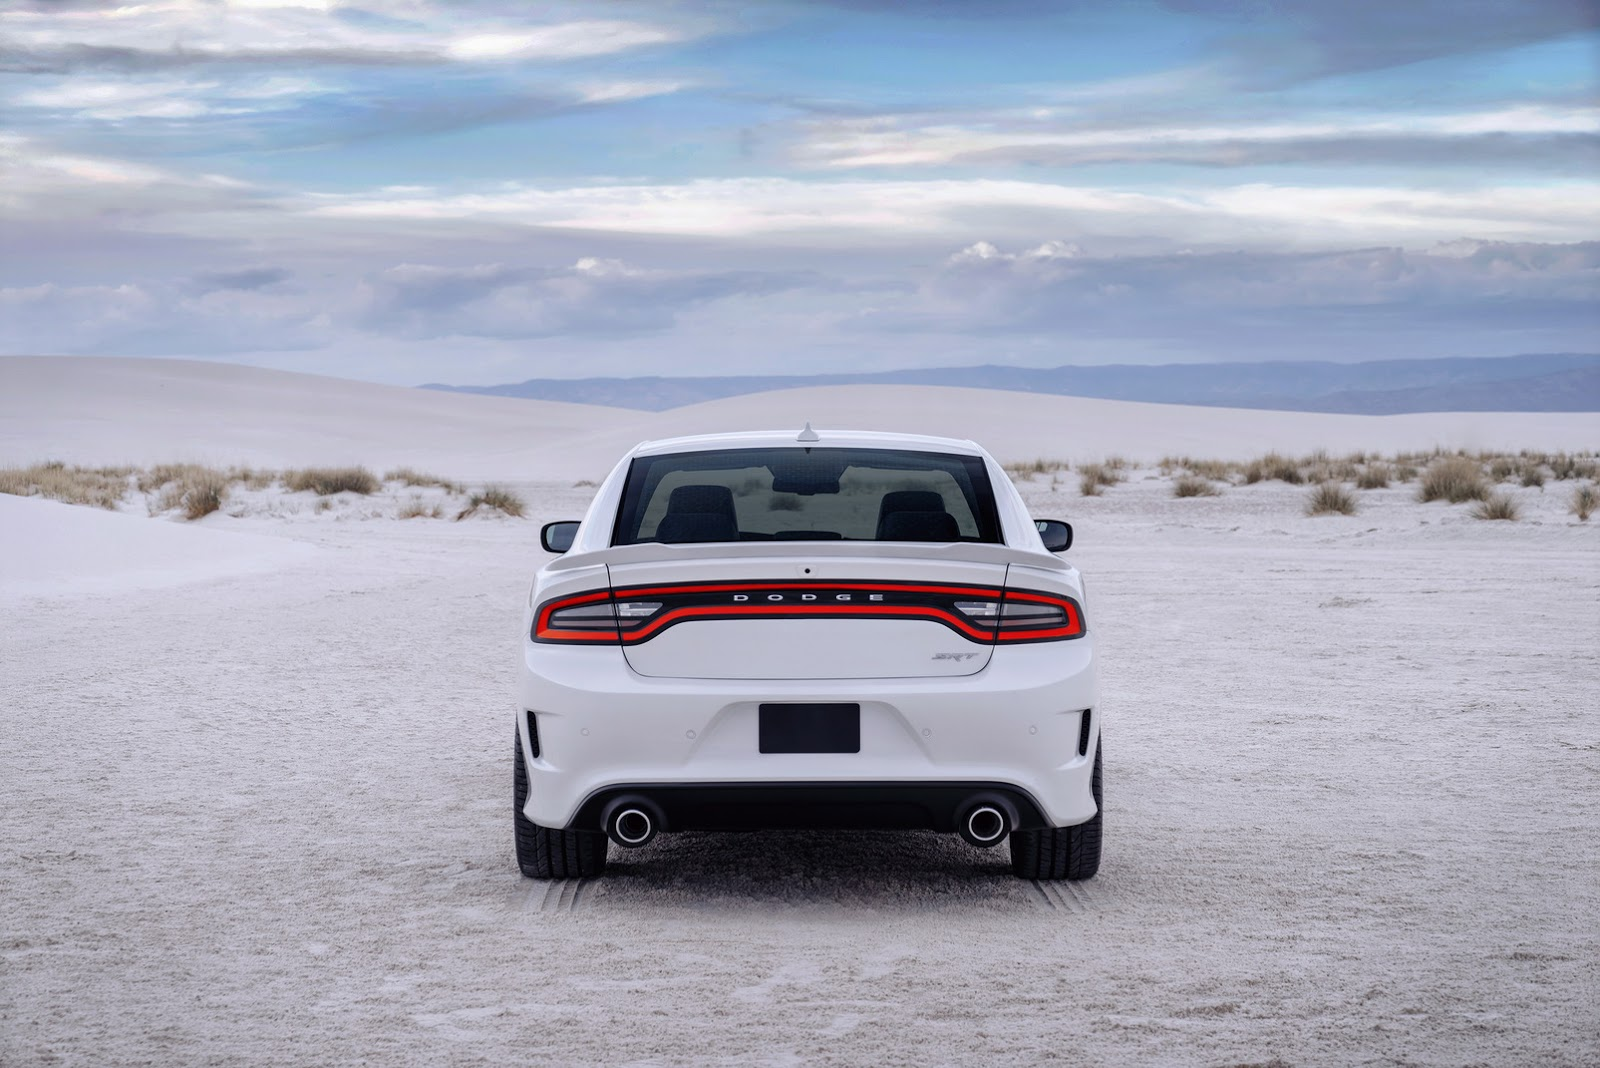 Dodge Says 2015 Charger SRT Hellcat is the World s Fastest